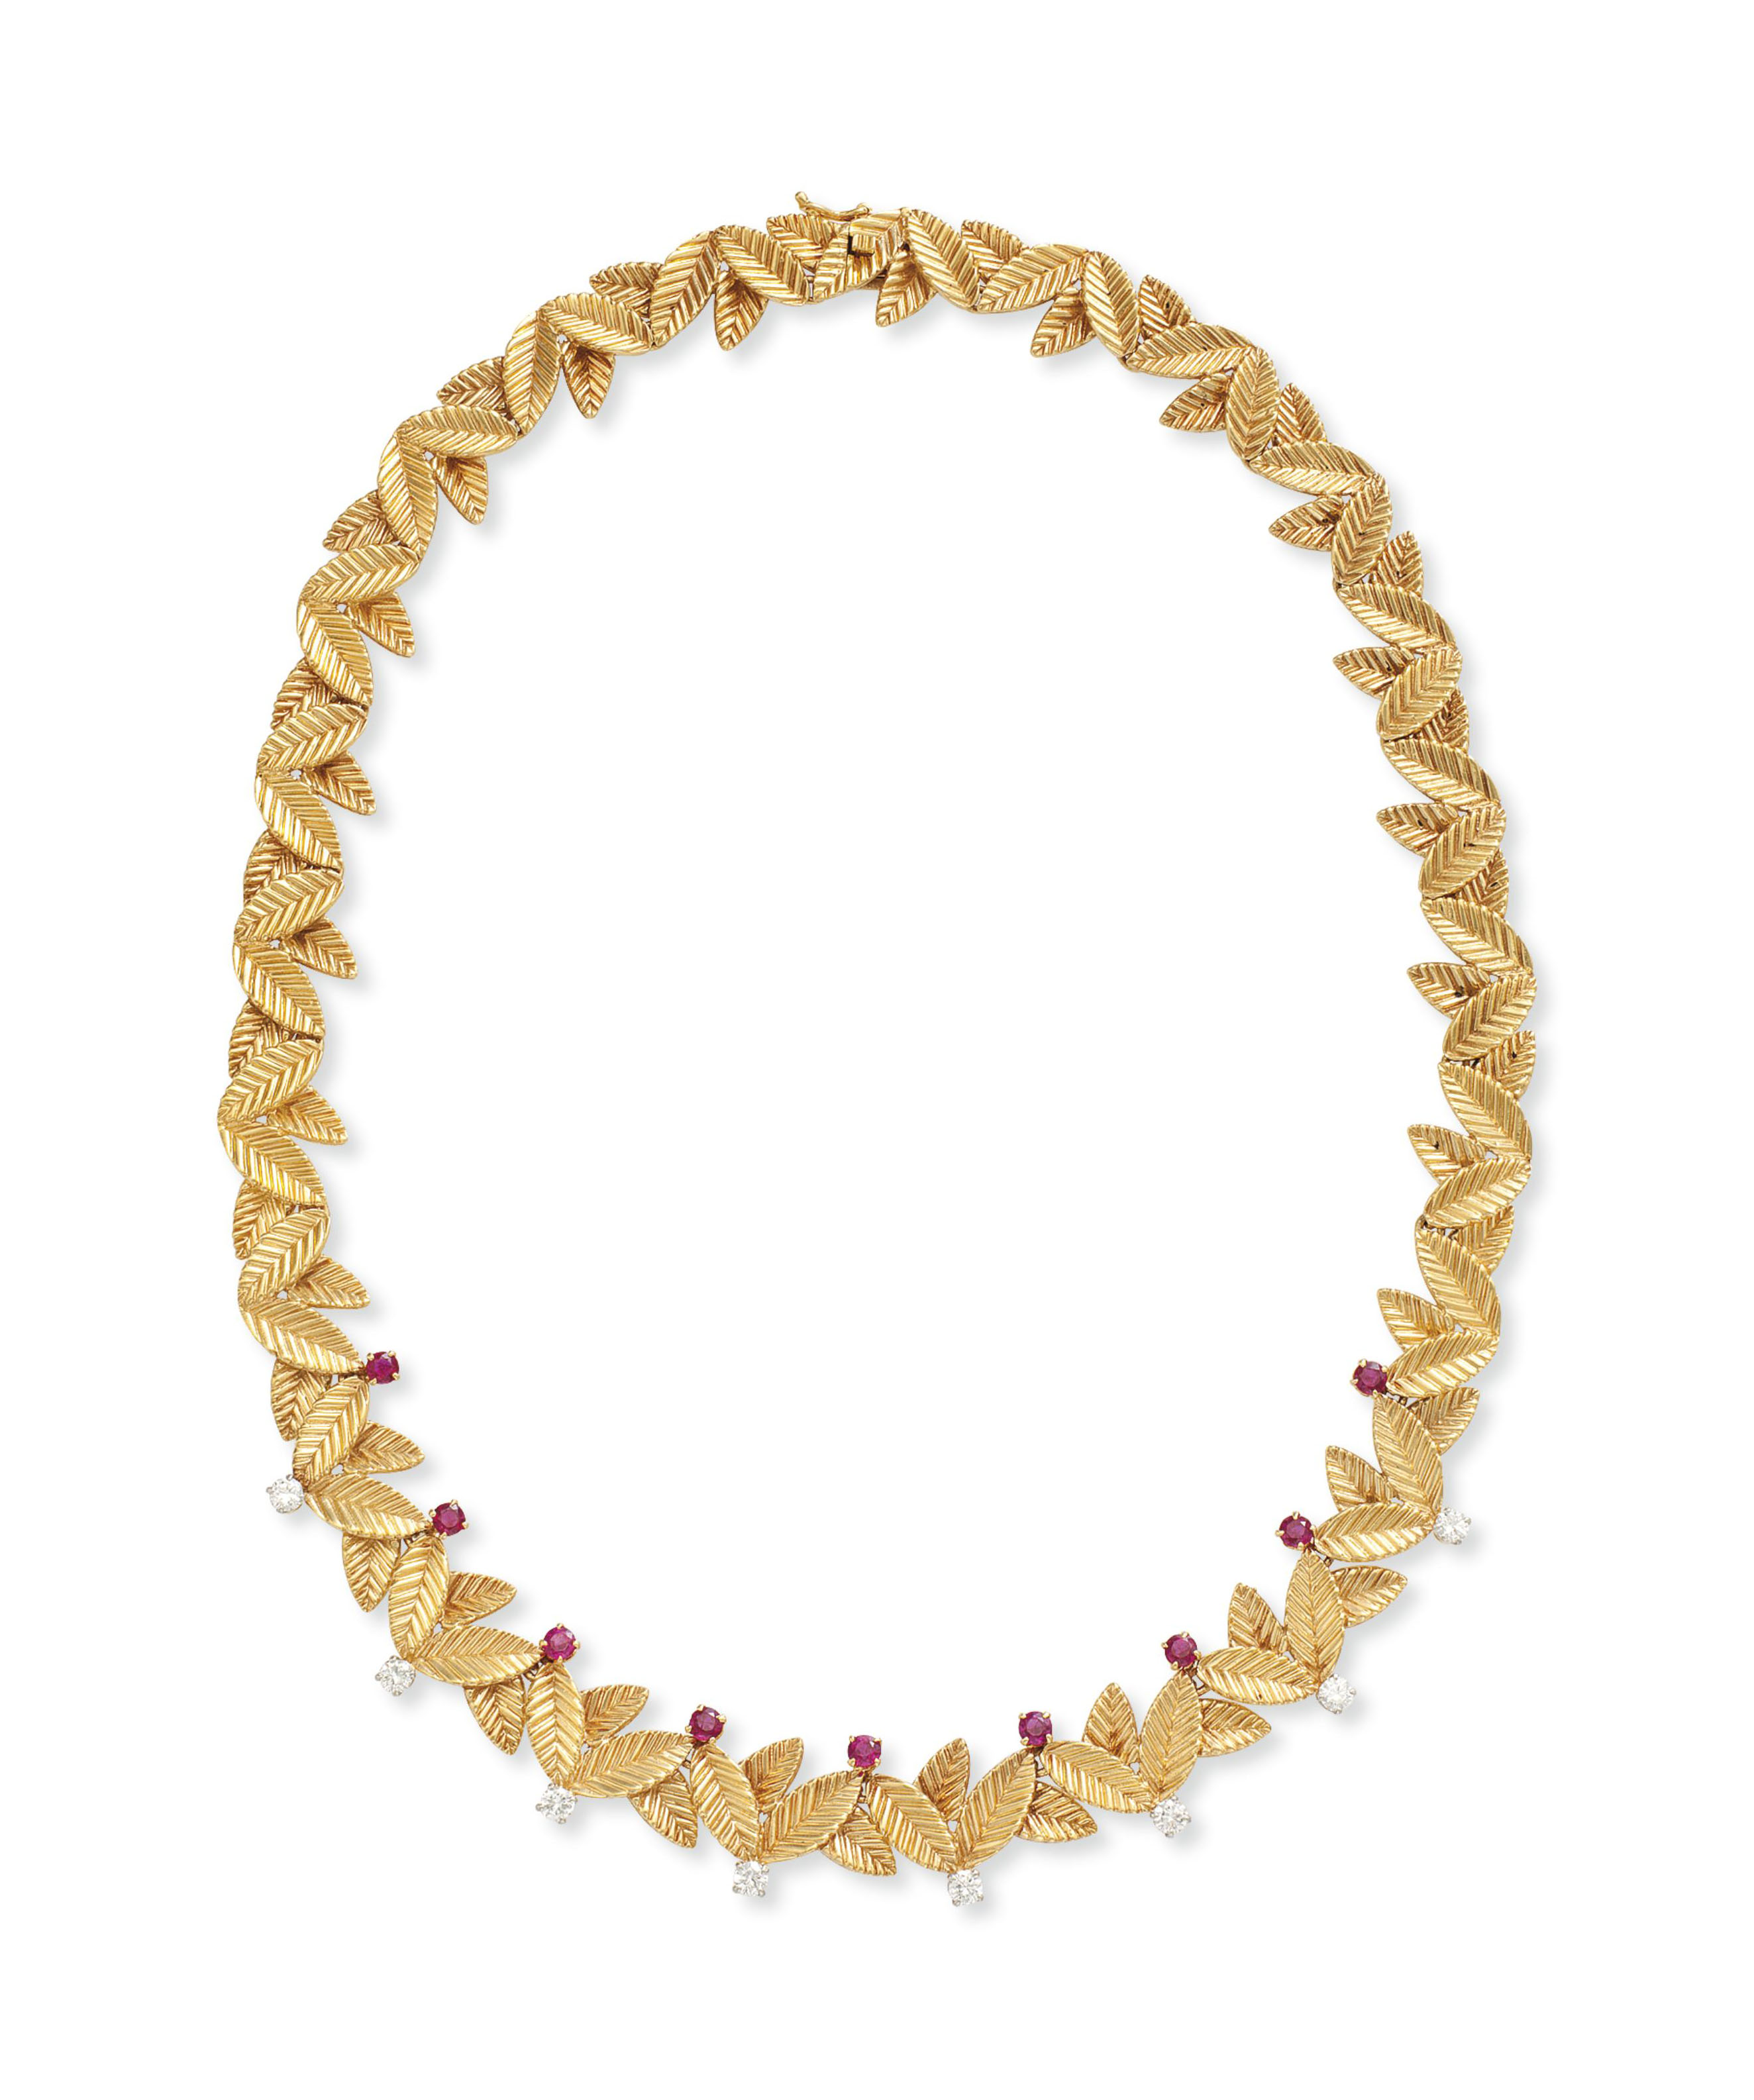 A RUBY, DIAMOND AND GOLD NECKL